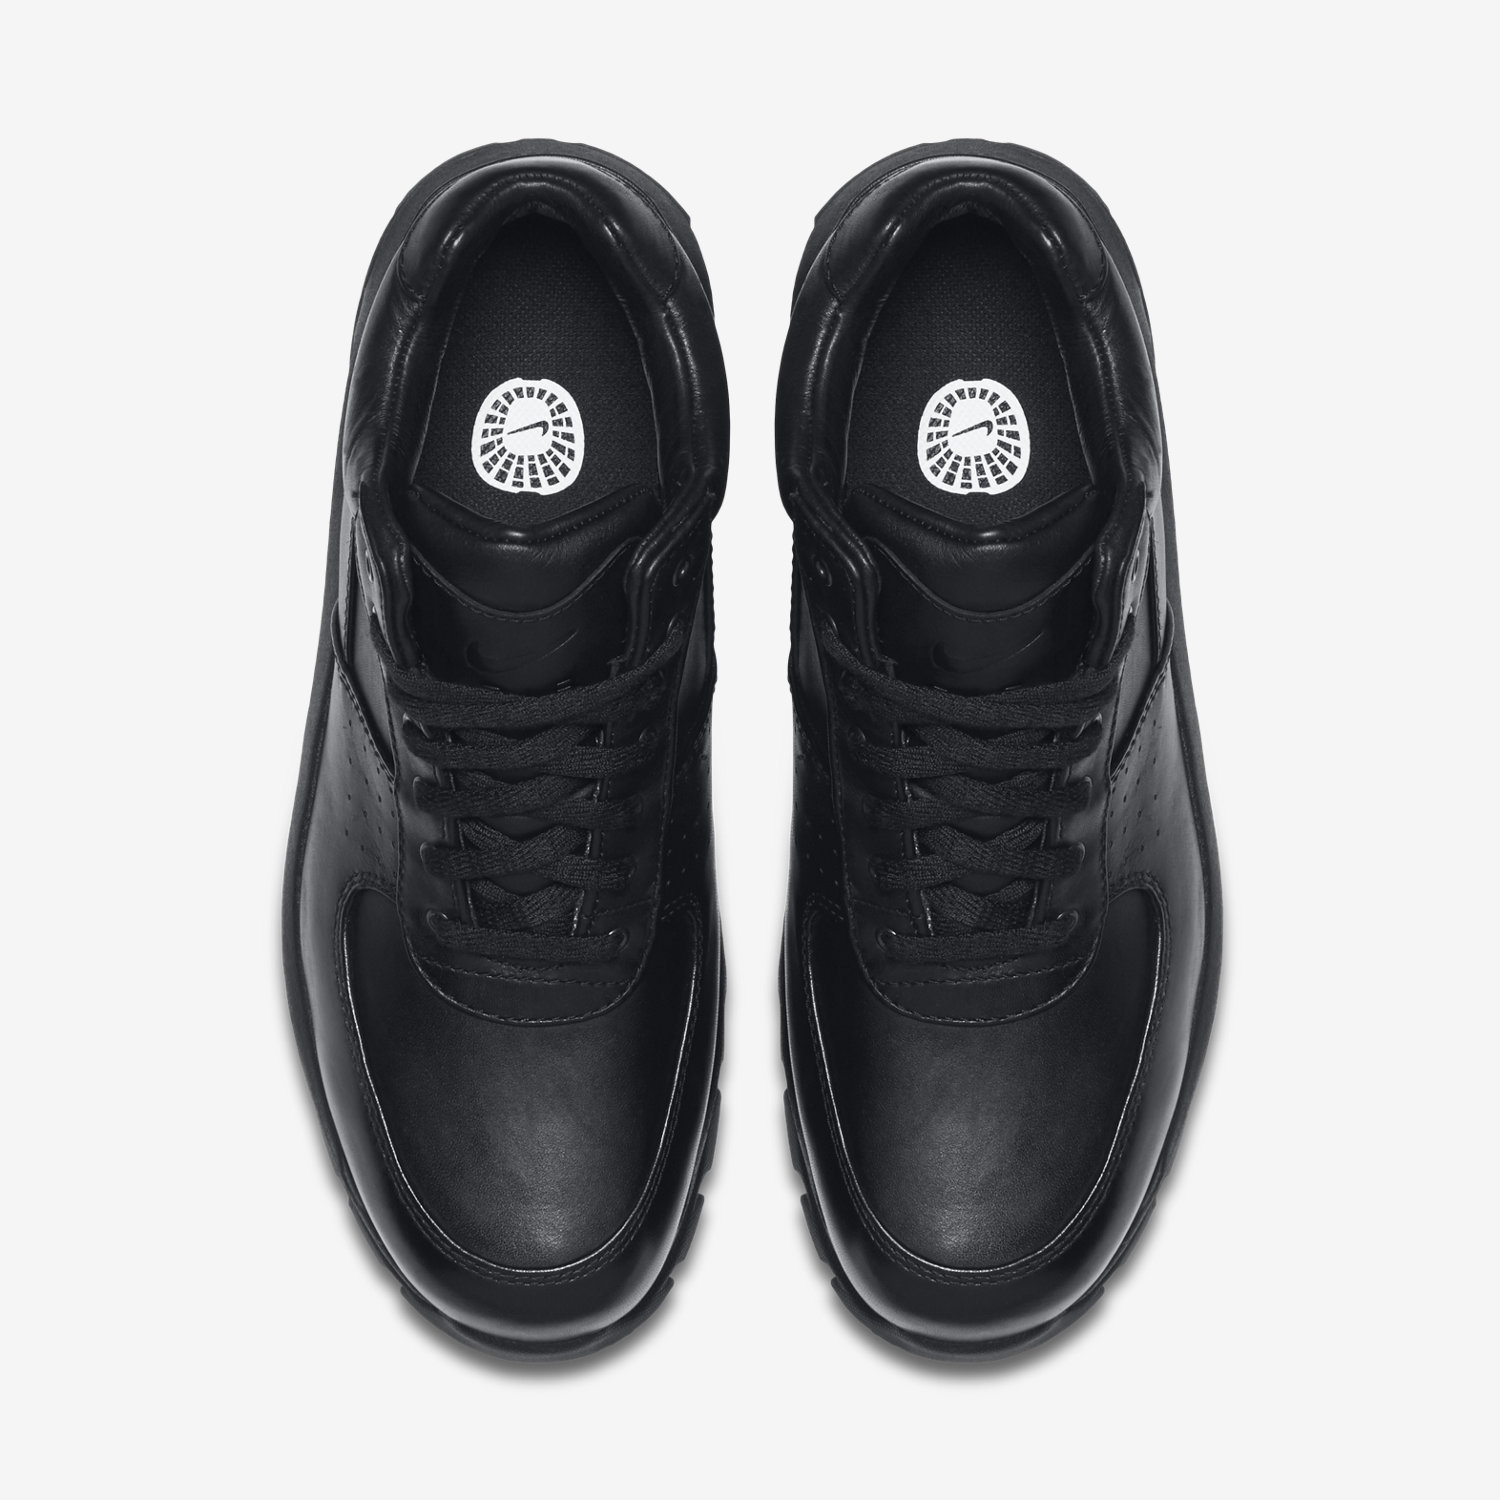 92b5dff15c ... nike air max goadome low leather mens black shoes ...